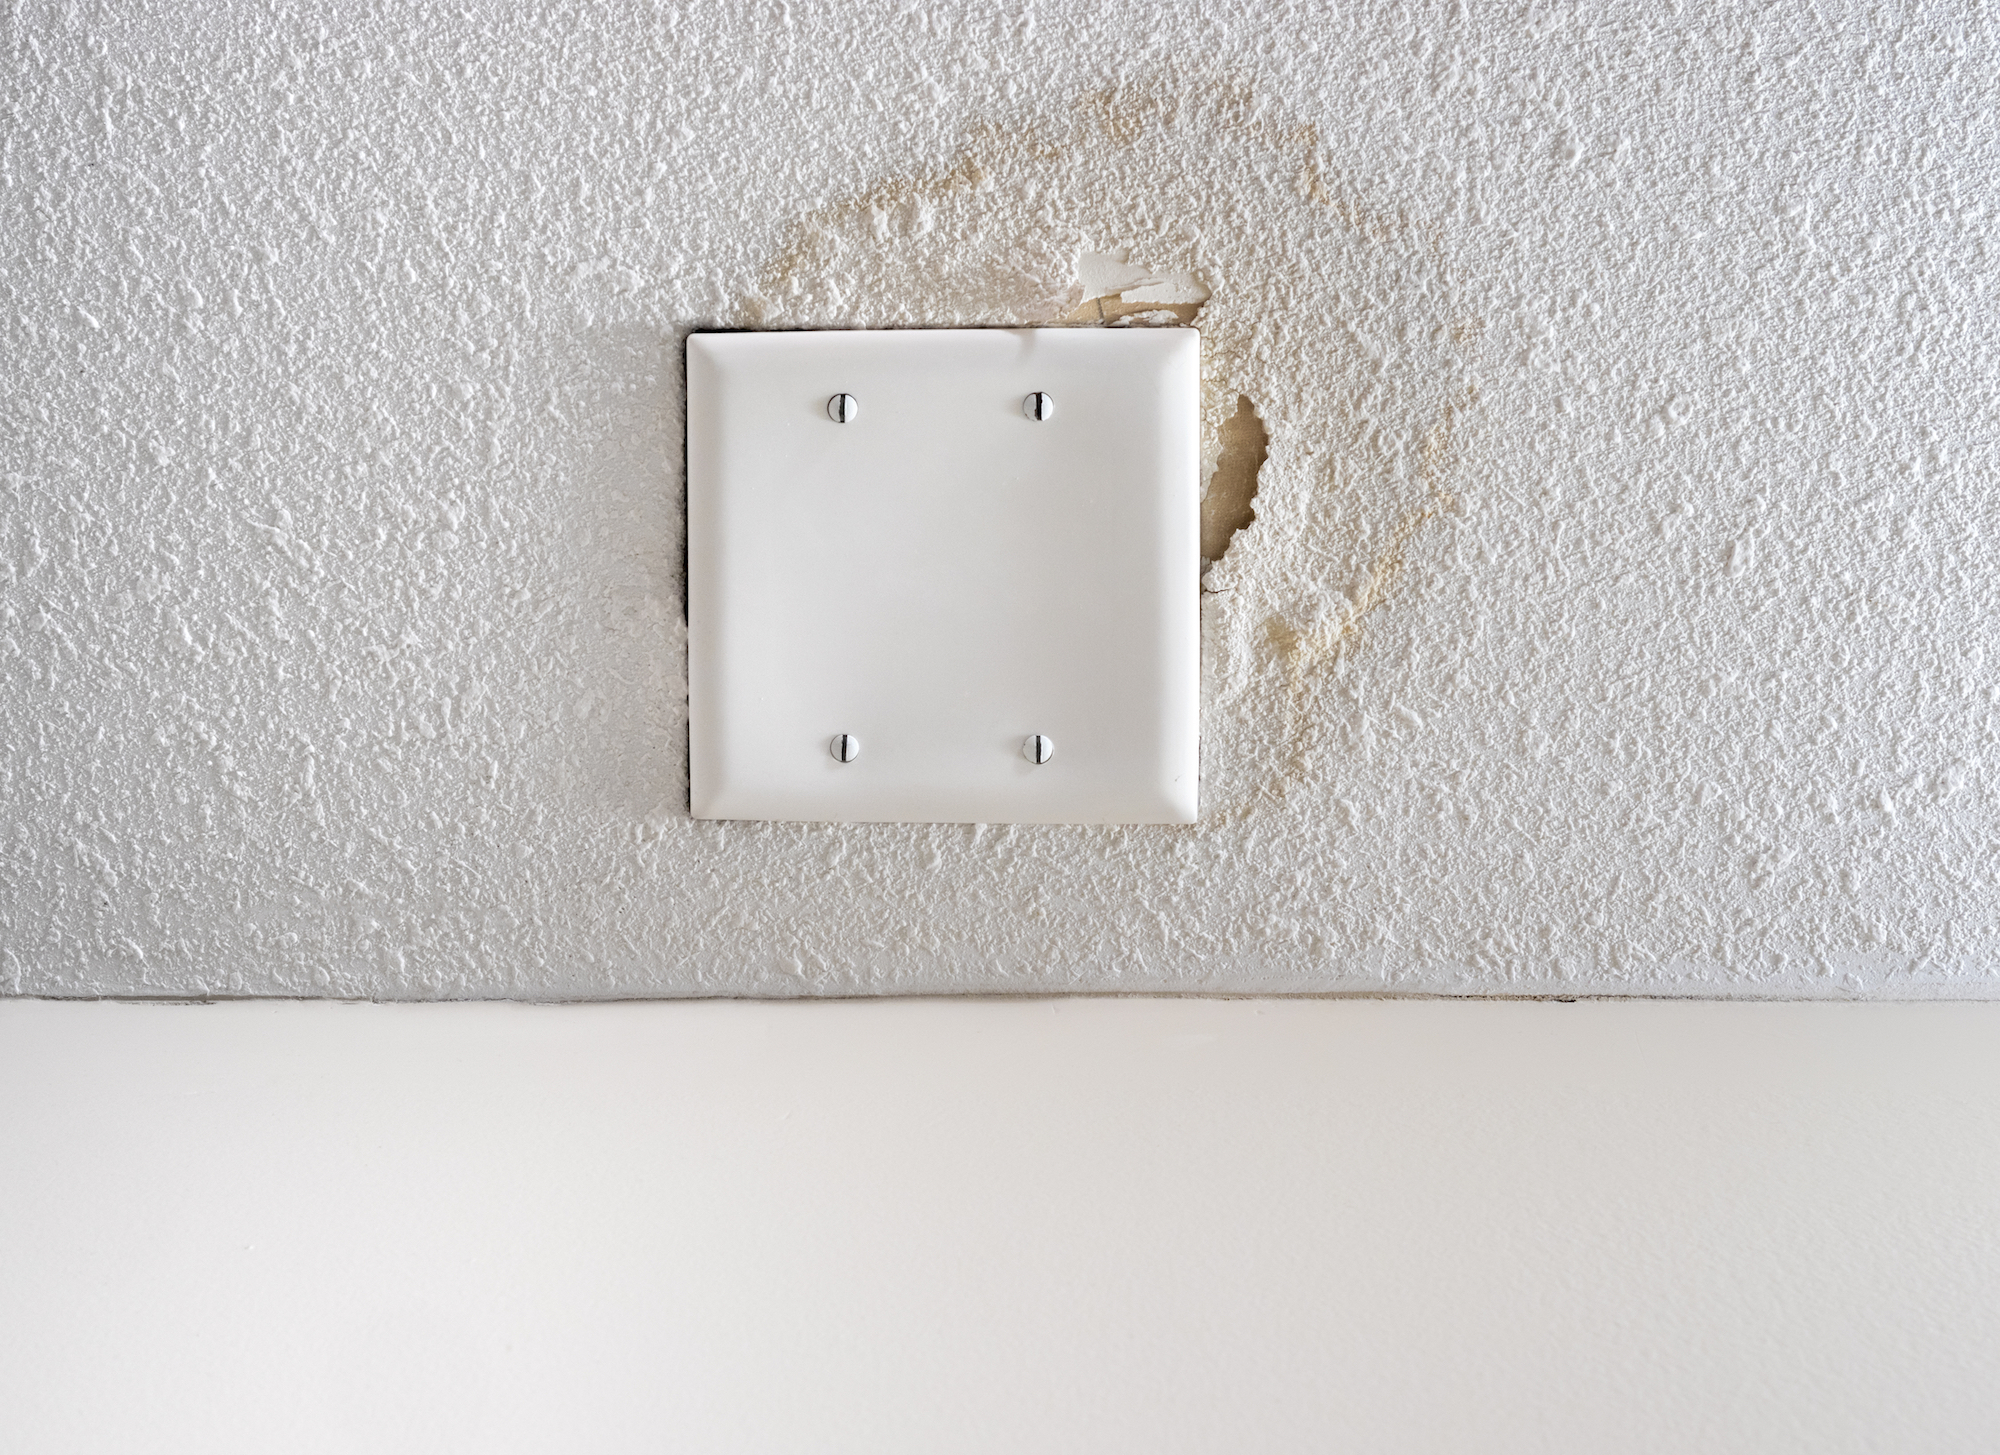 Worn out popcorn ceiling